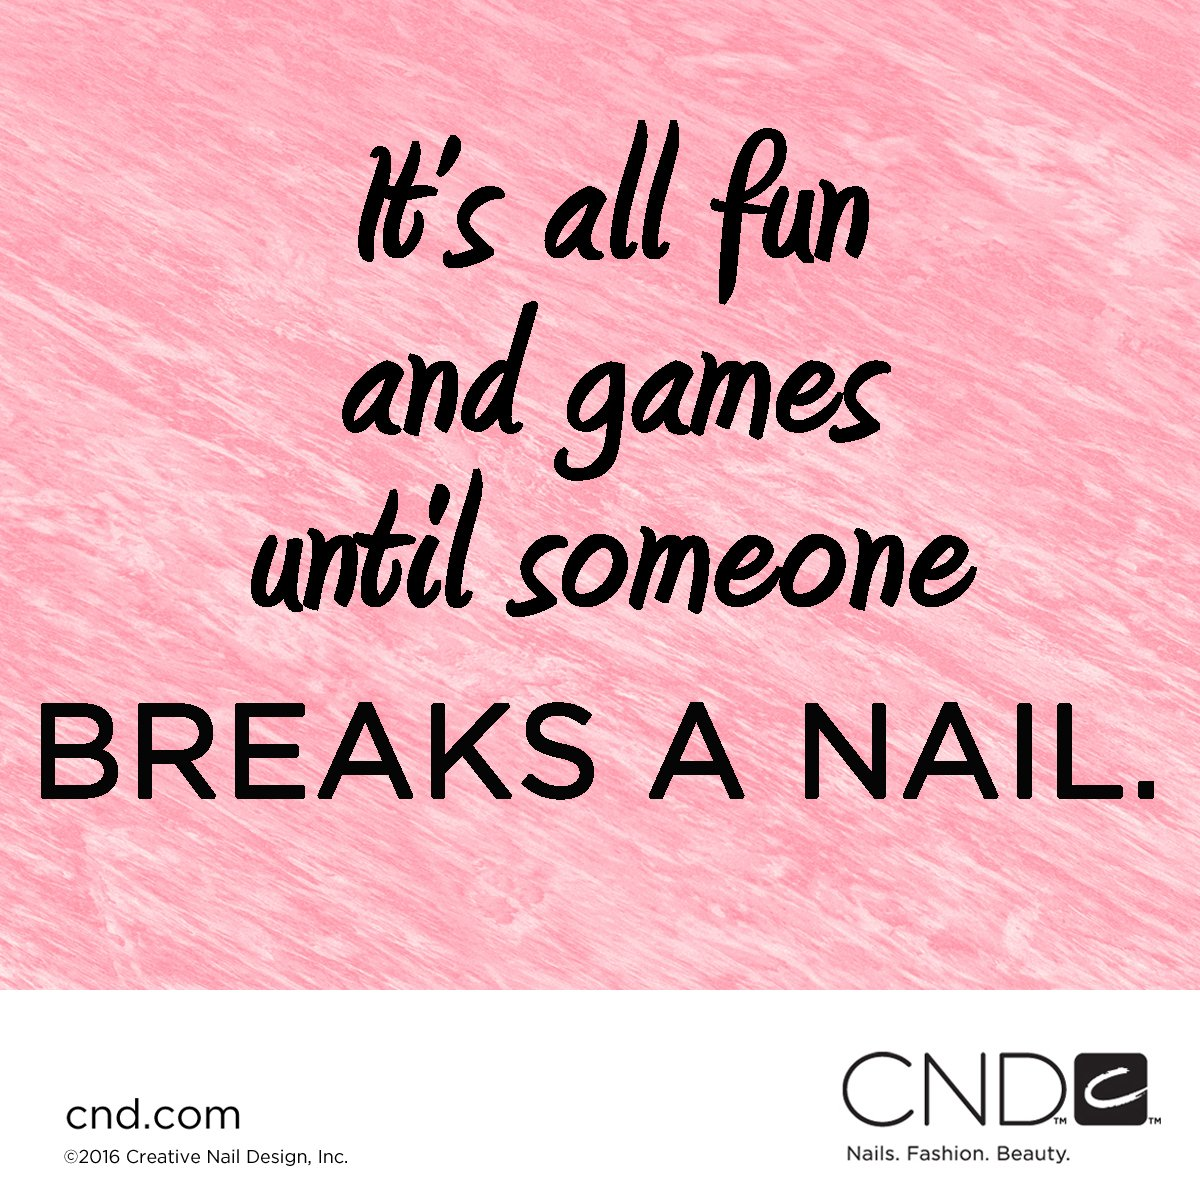 We take our nails very seriously. RT if you agree! #QOTD https://t.co/K1vtErIJui